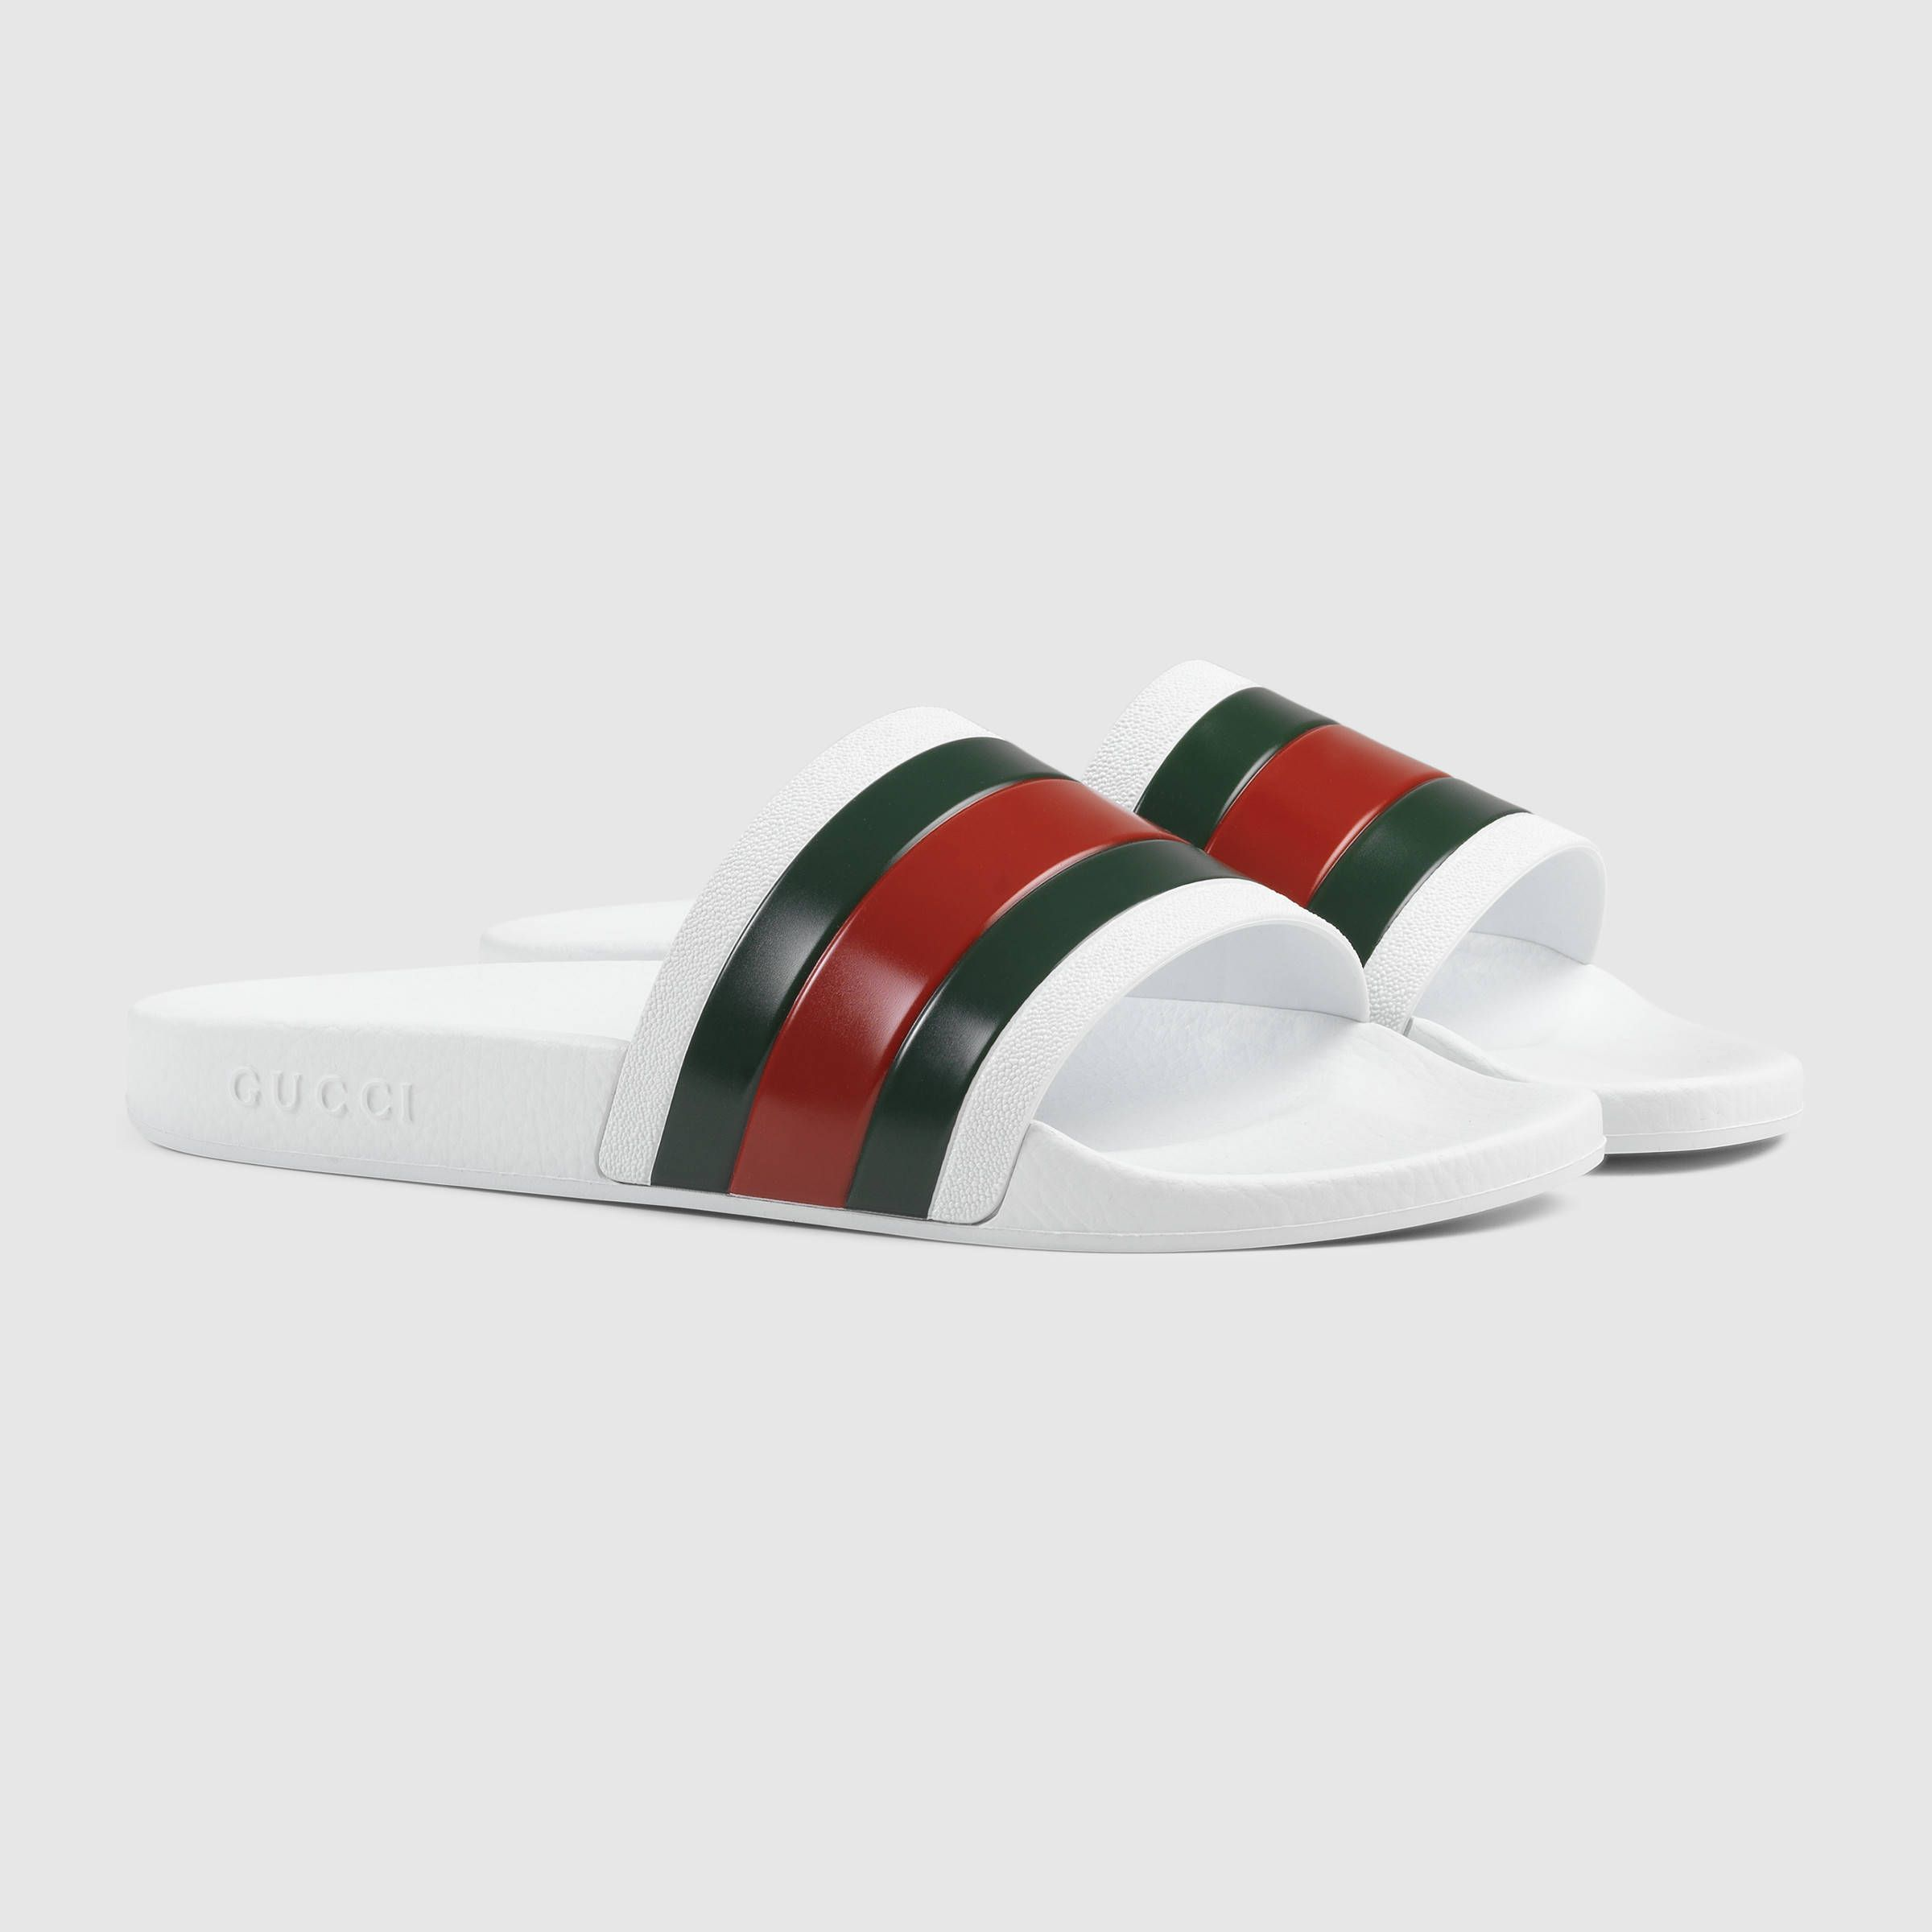 96d43036919 Gucci Men - Rubber slide sandal -  160